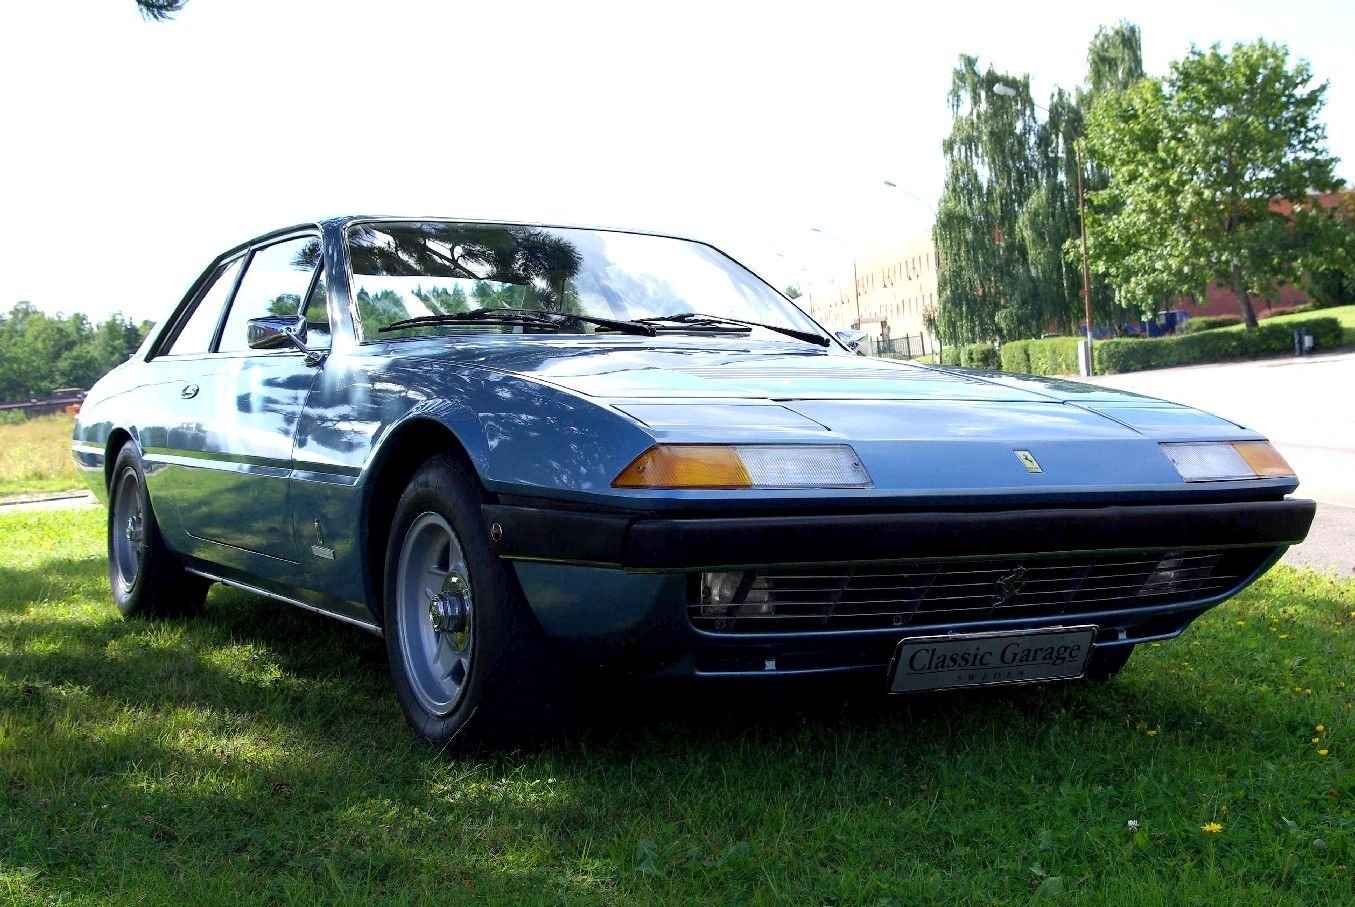 ferrari 365 gt4 2 2 part 1 only cars and cars. Black Bedroom Furniture Sets. Home Design Ideas